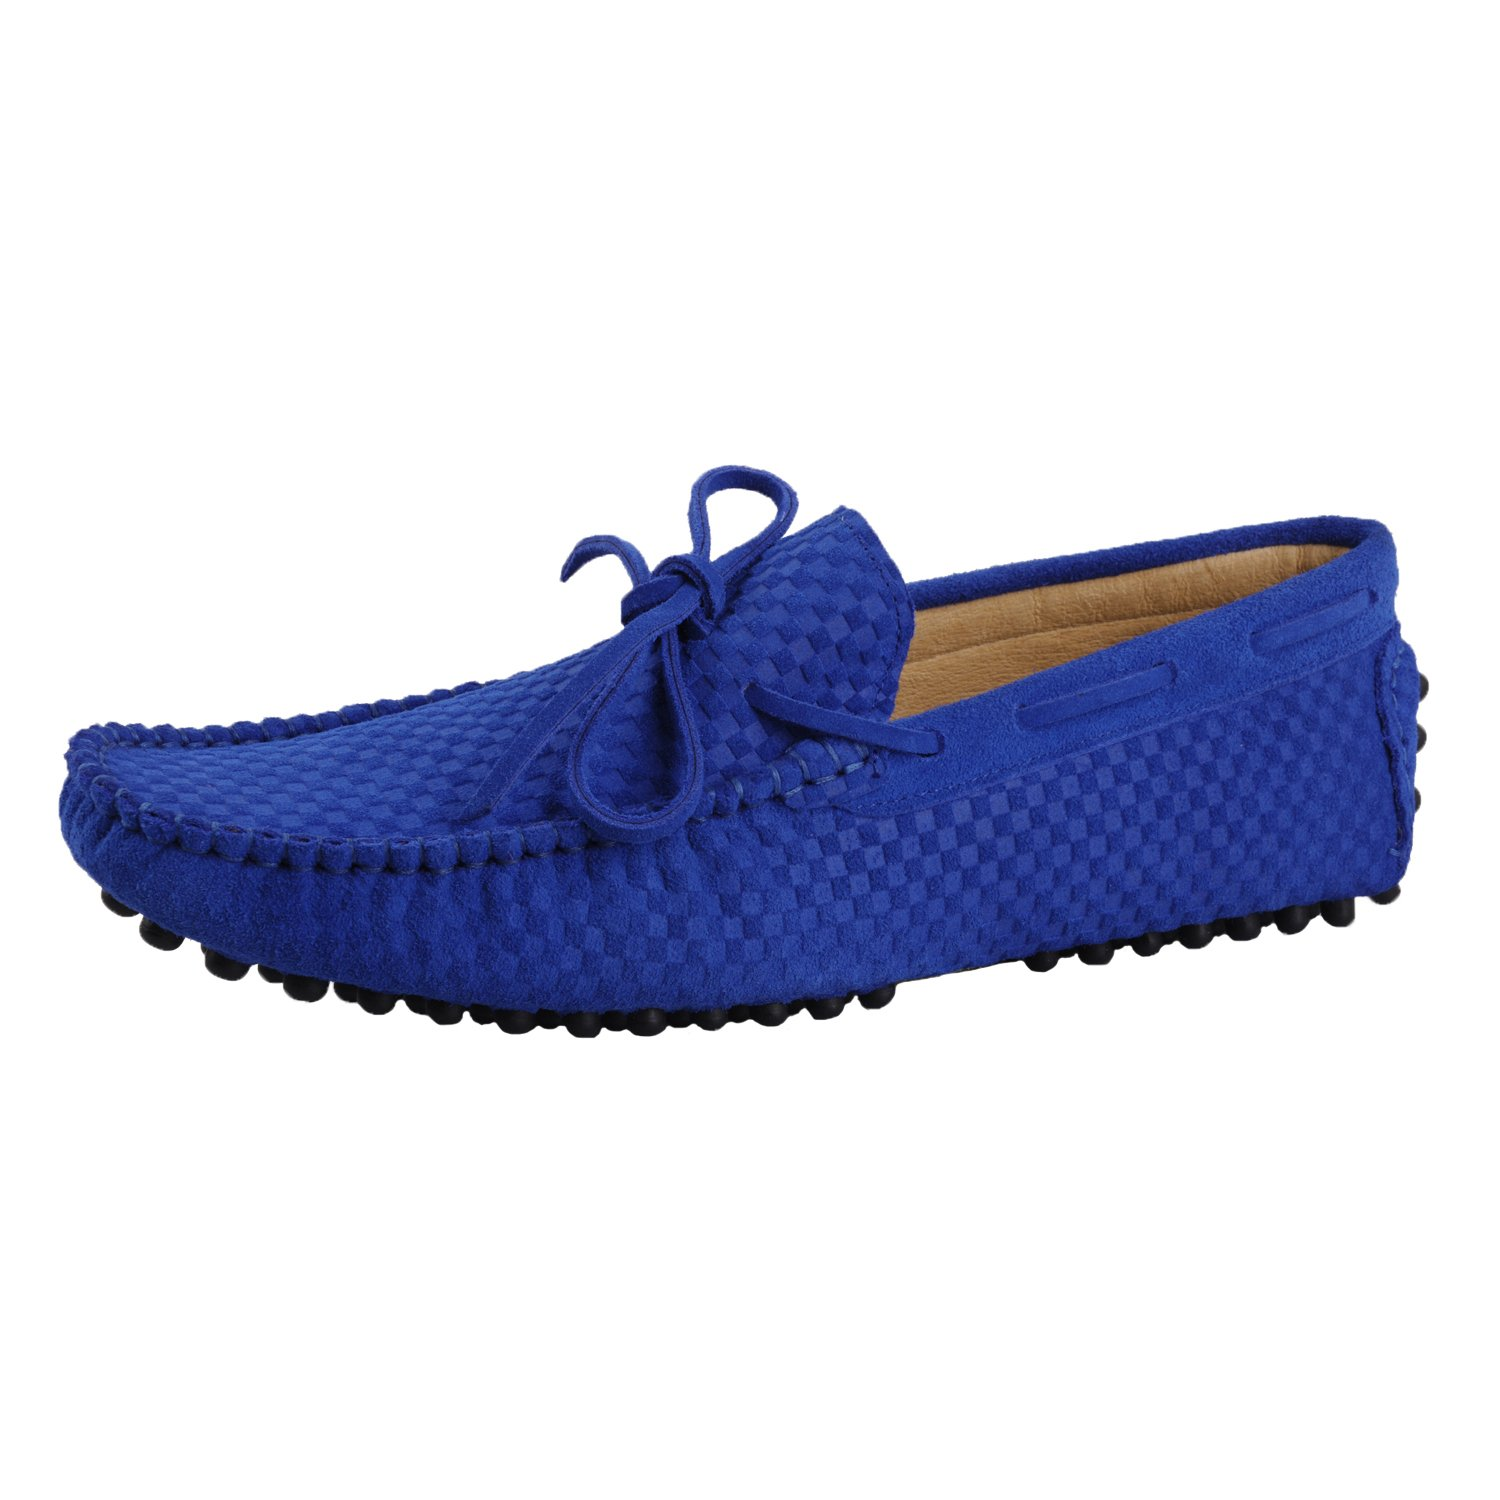 Santimon Men's Leather Driving Walking Moccasins Loafer Shoes Woven Laced Ornaments